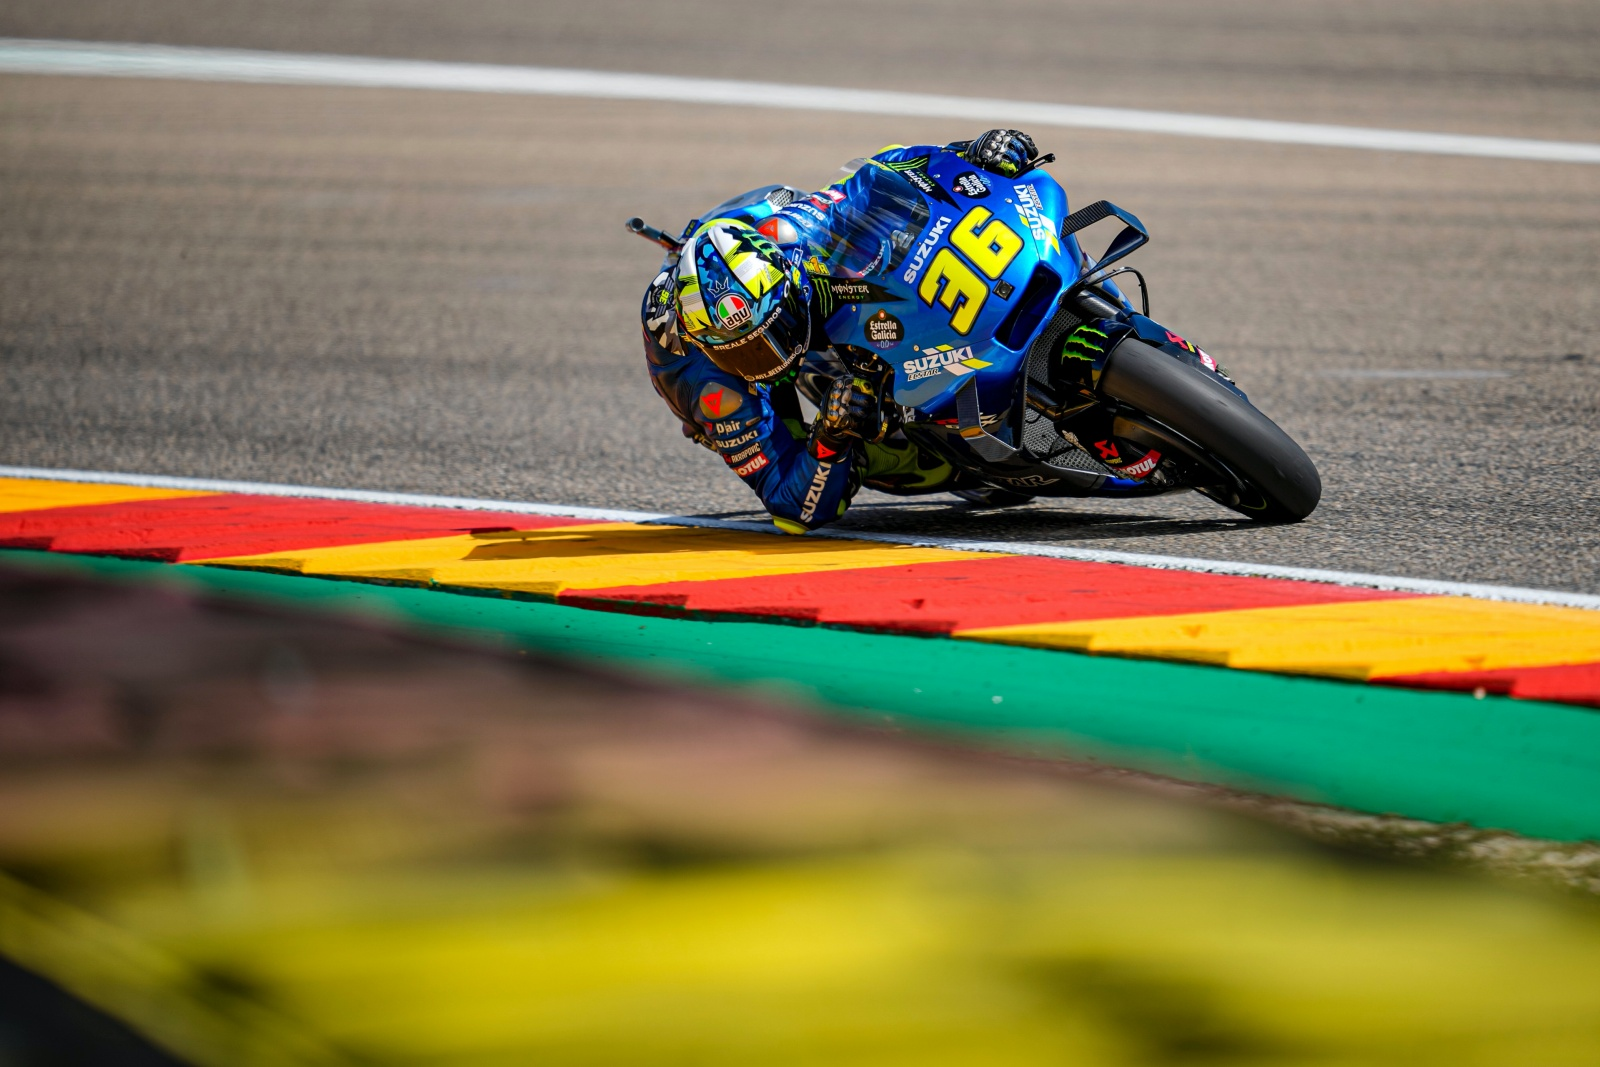 SUZUKI SEARCHING FOR MORE AT MOTORLAND ON FRIDAY